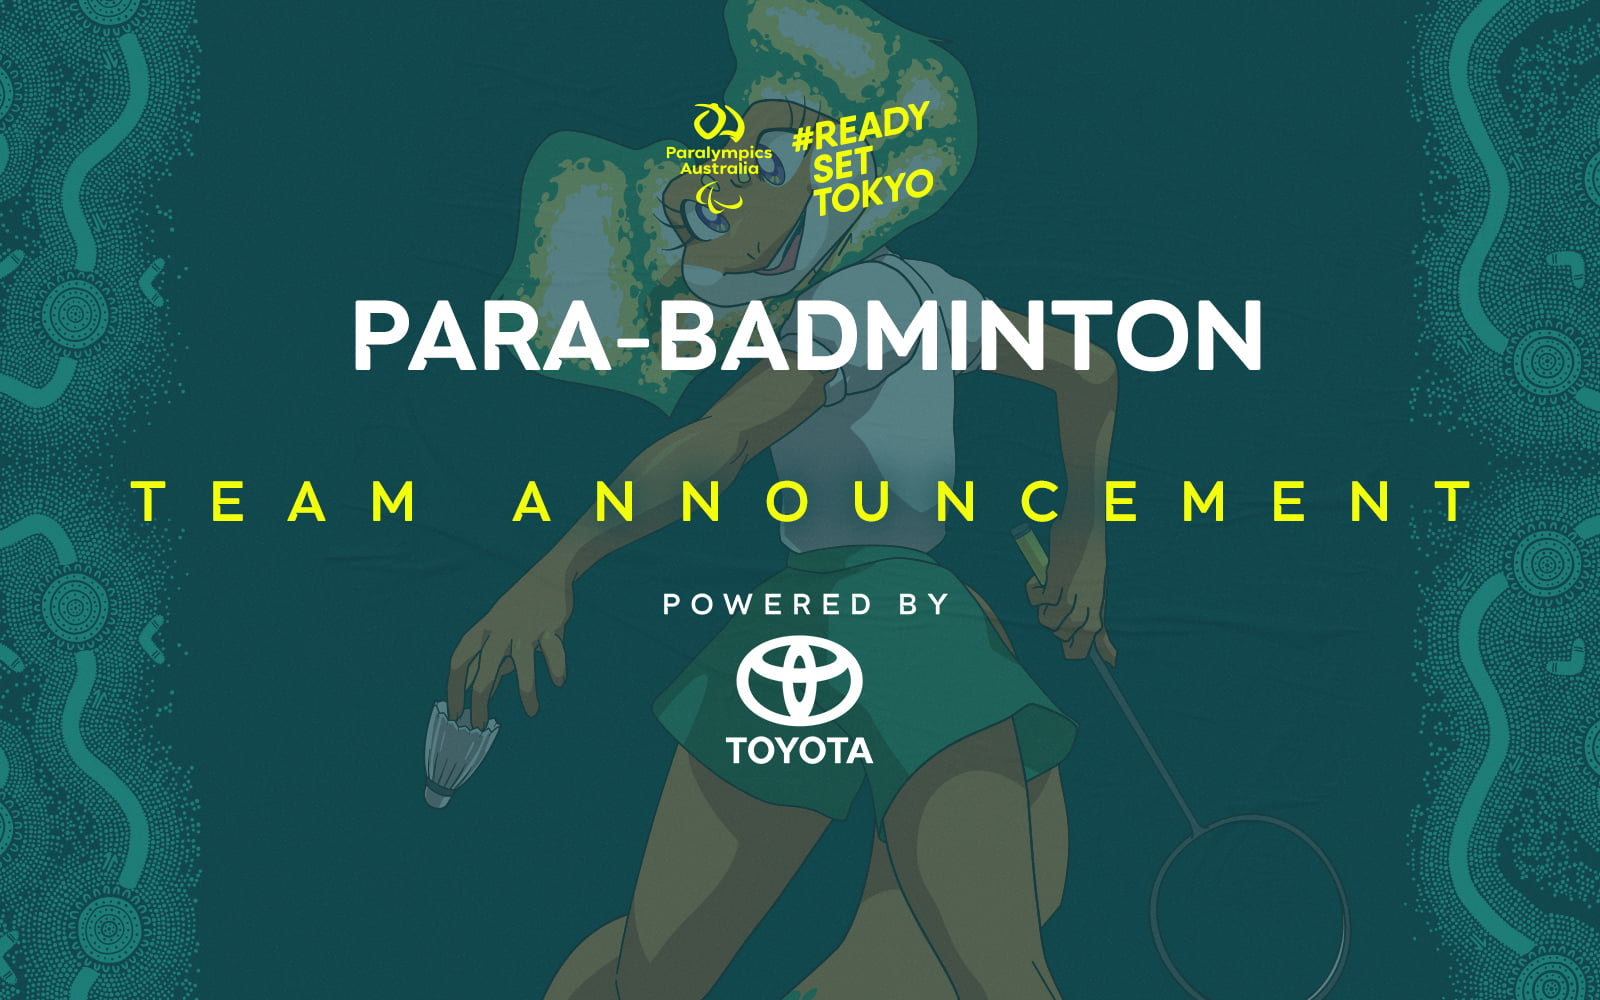 Duo To Give Australian Badminton A Paralympic Boost